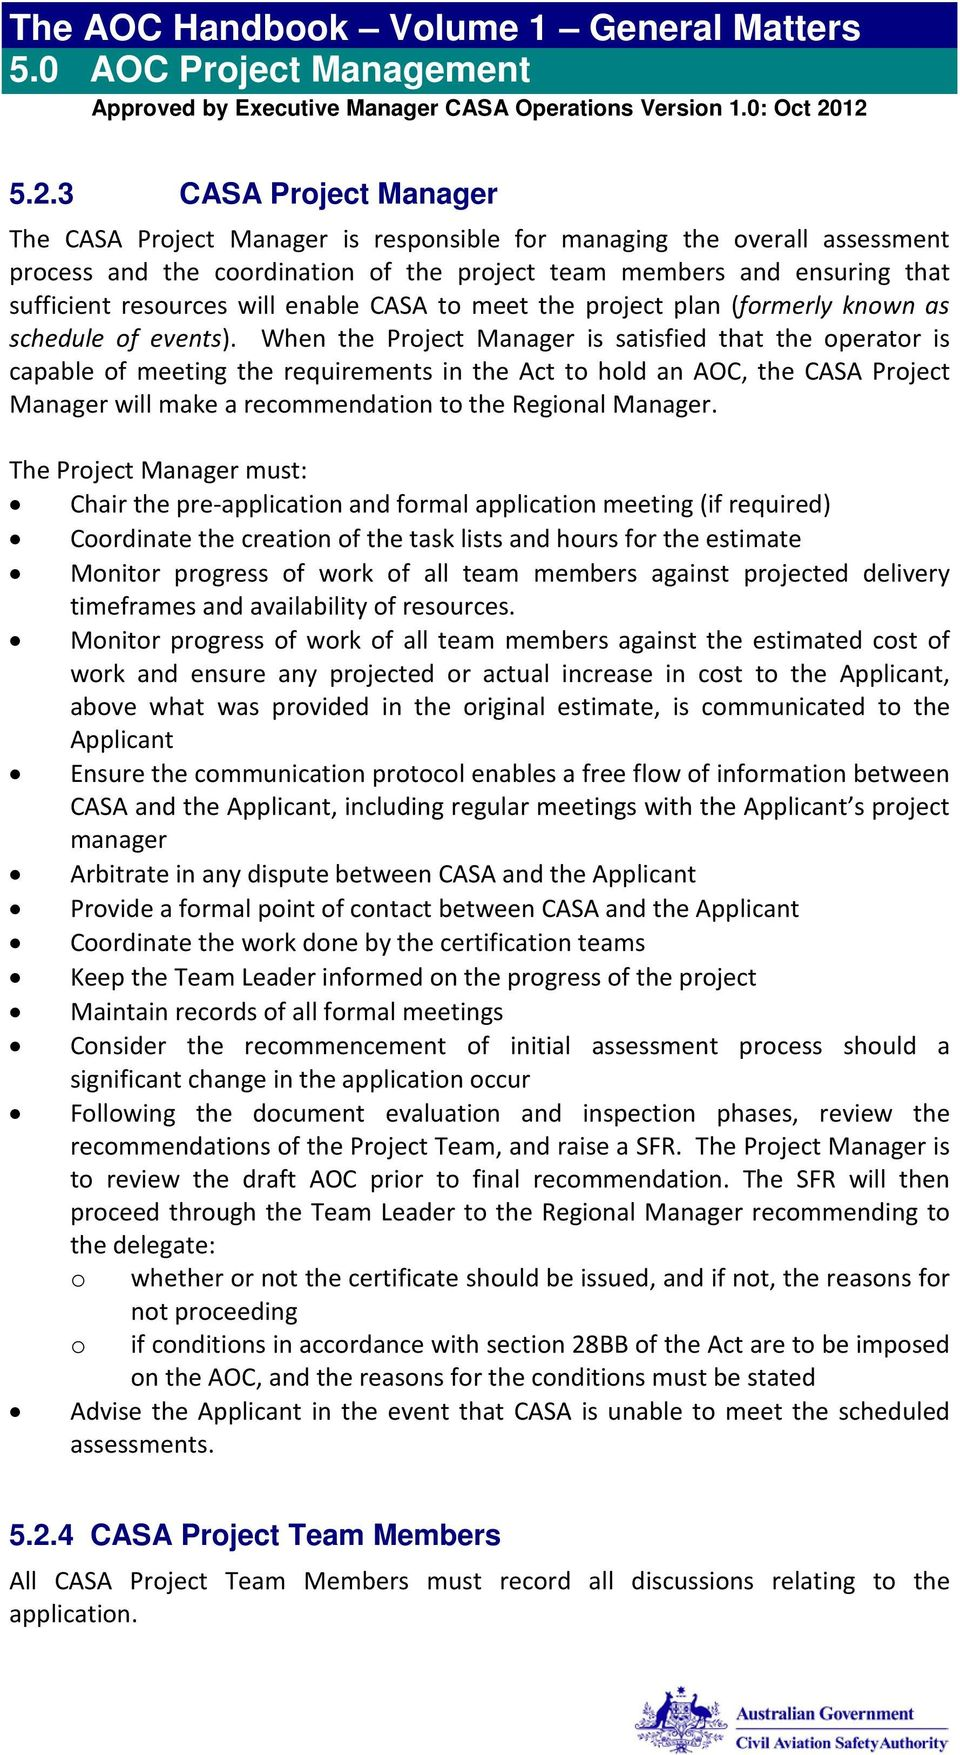 When the Project Manager is satisfied that the operator is capable of meeting the requirements in the Act to hold an AOC, the CASA Project Manager will make a recommendation to the Regional Manager.